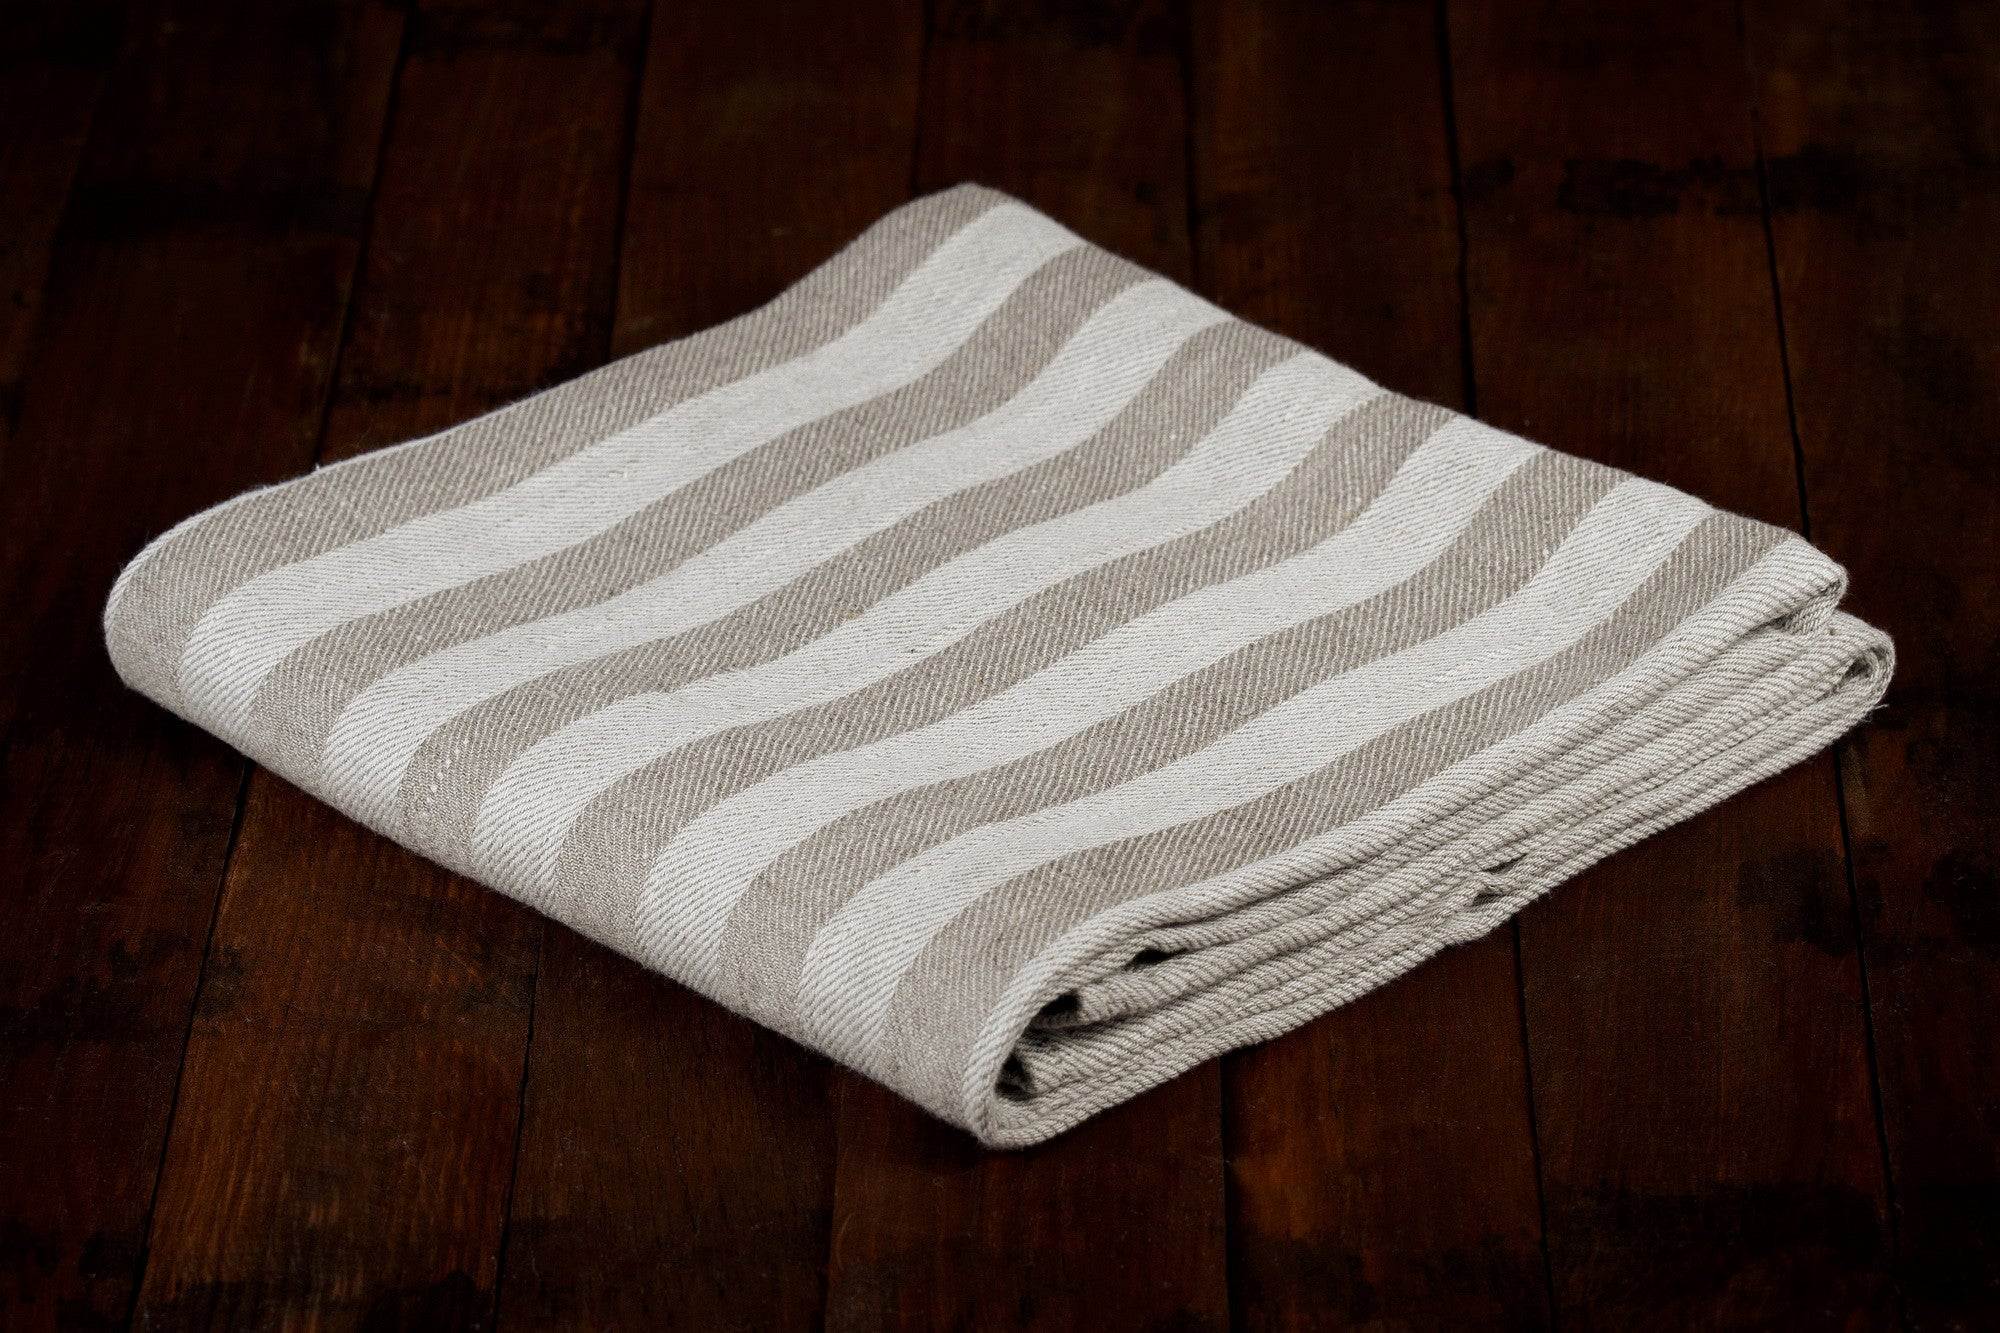 BLESS LINEN Jacquard Striped Pure Linen Flax Bath Towel, Grey/White - BLESS LINEN pure linen towels and blankets - 4